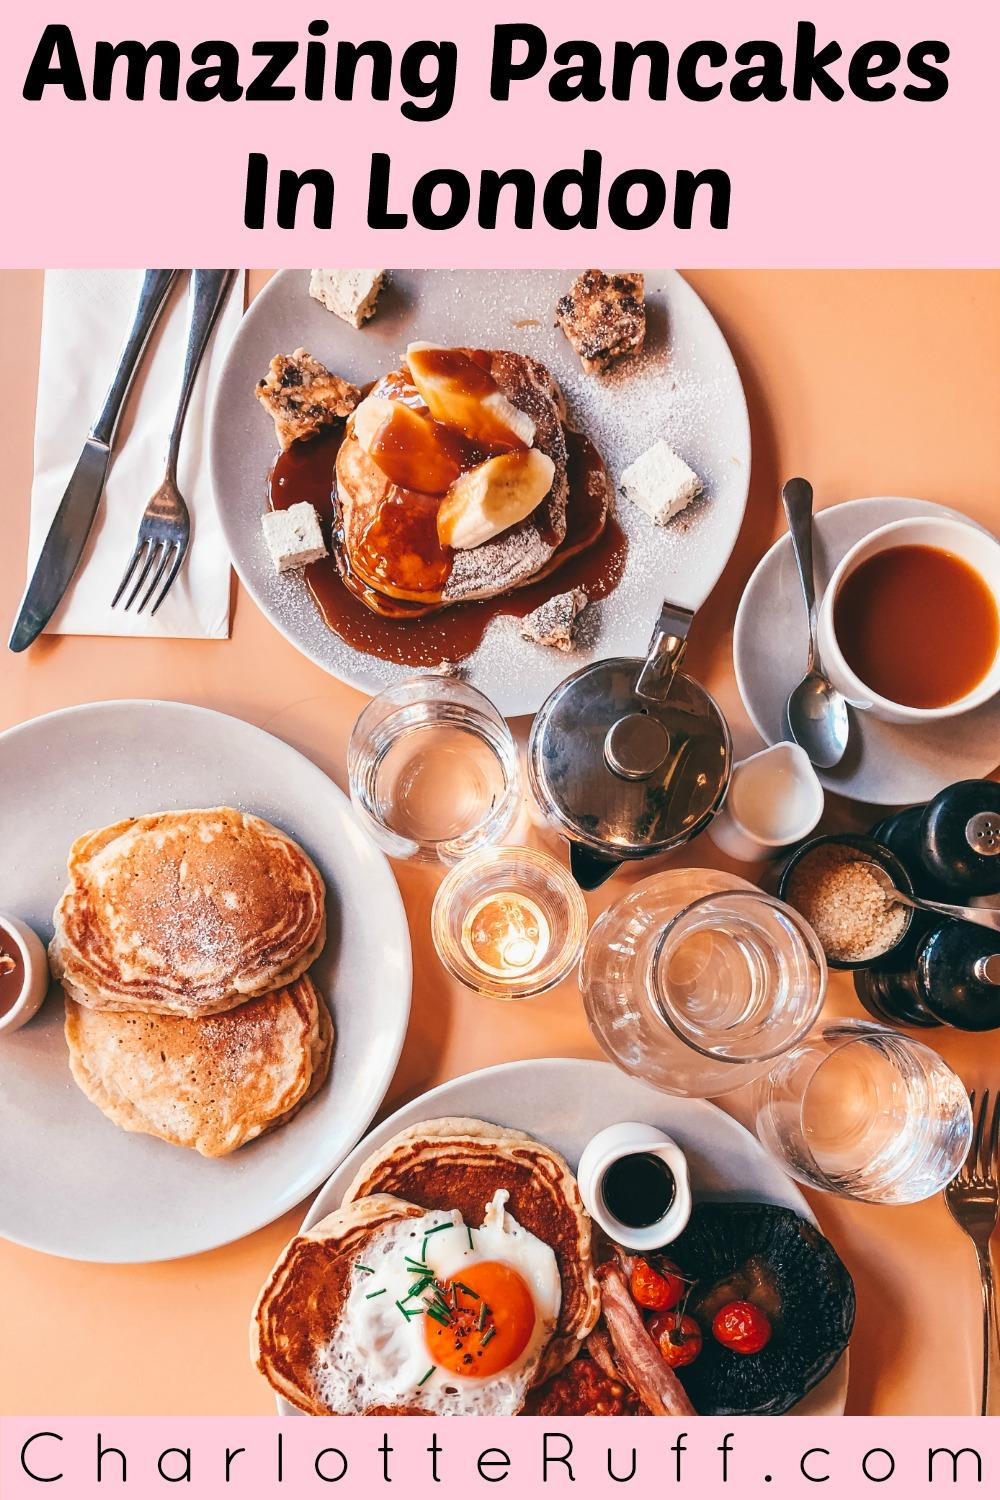 Amazing Pancakes in London - CharlotteRuff.com Pinterest post